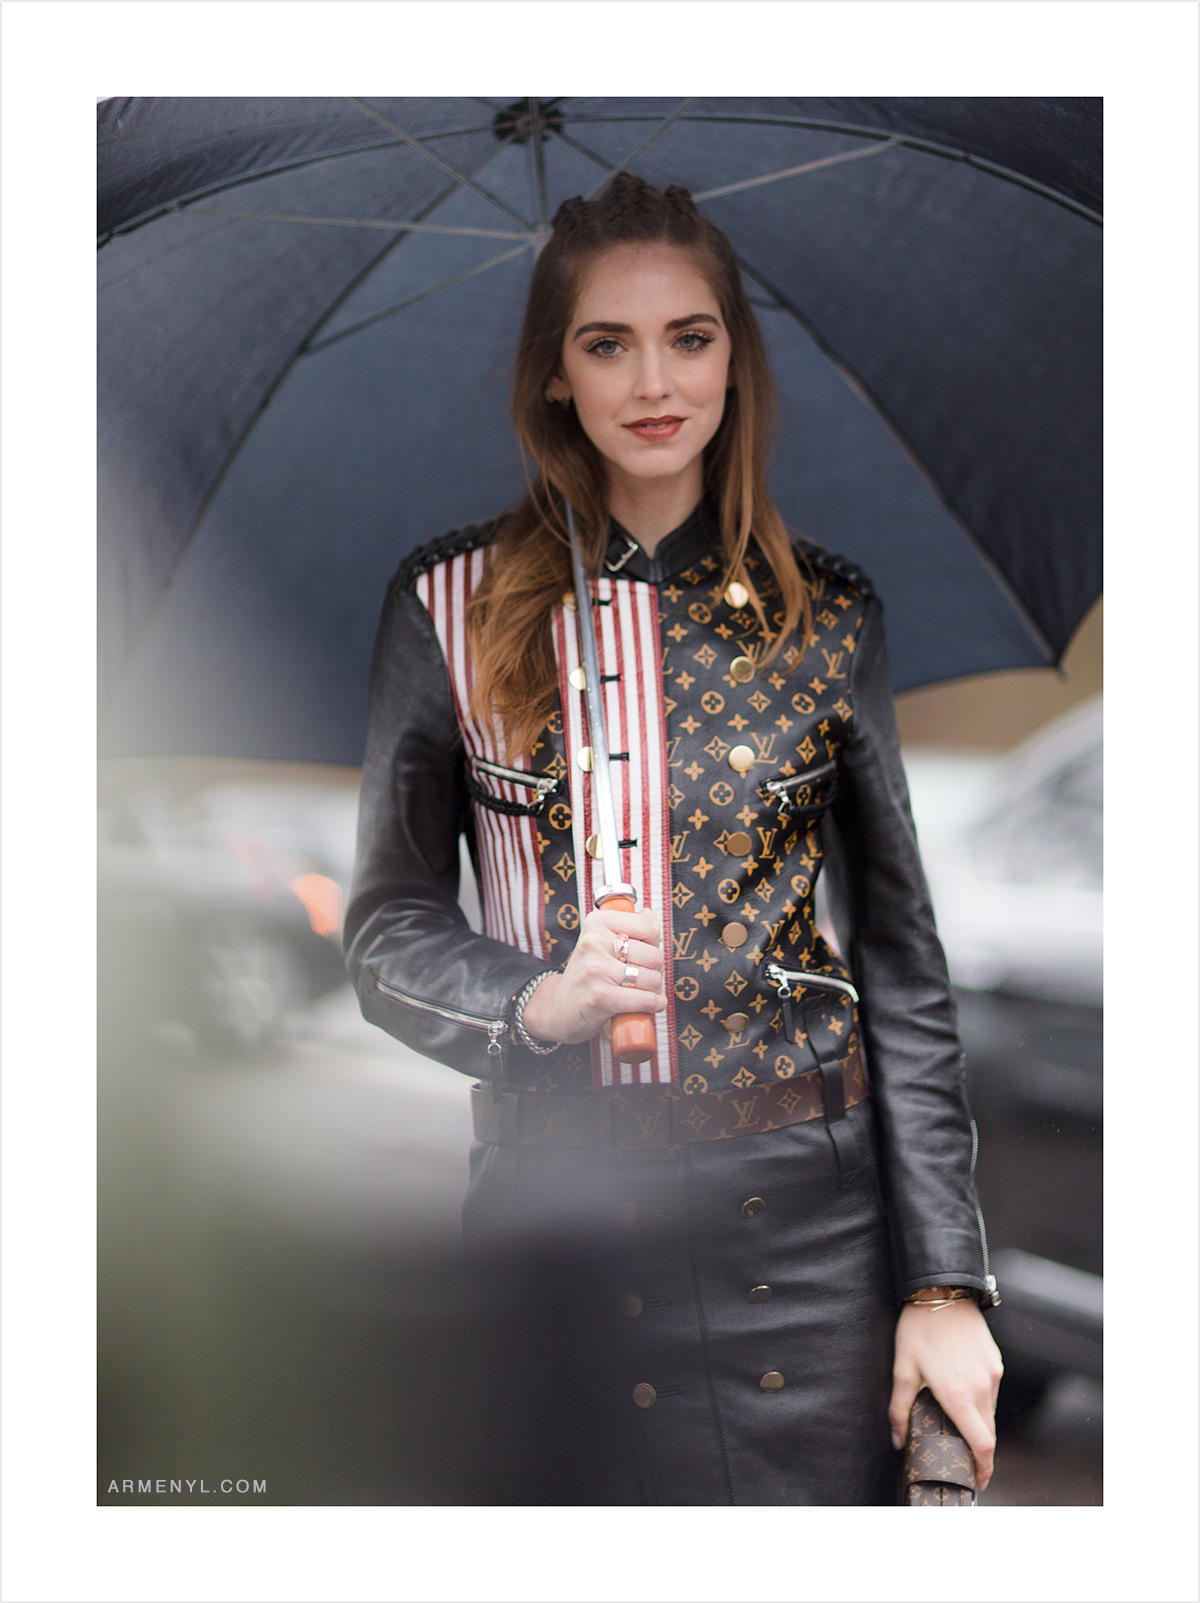 Chiara Ferragni at Louis Vuitton in the rain Street style at Louis Vuitton FW 16 show in Paris on March 9th photographed by Armenyl.com